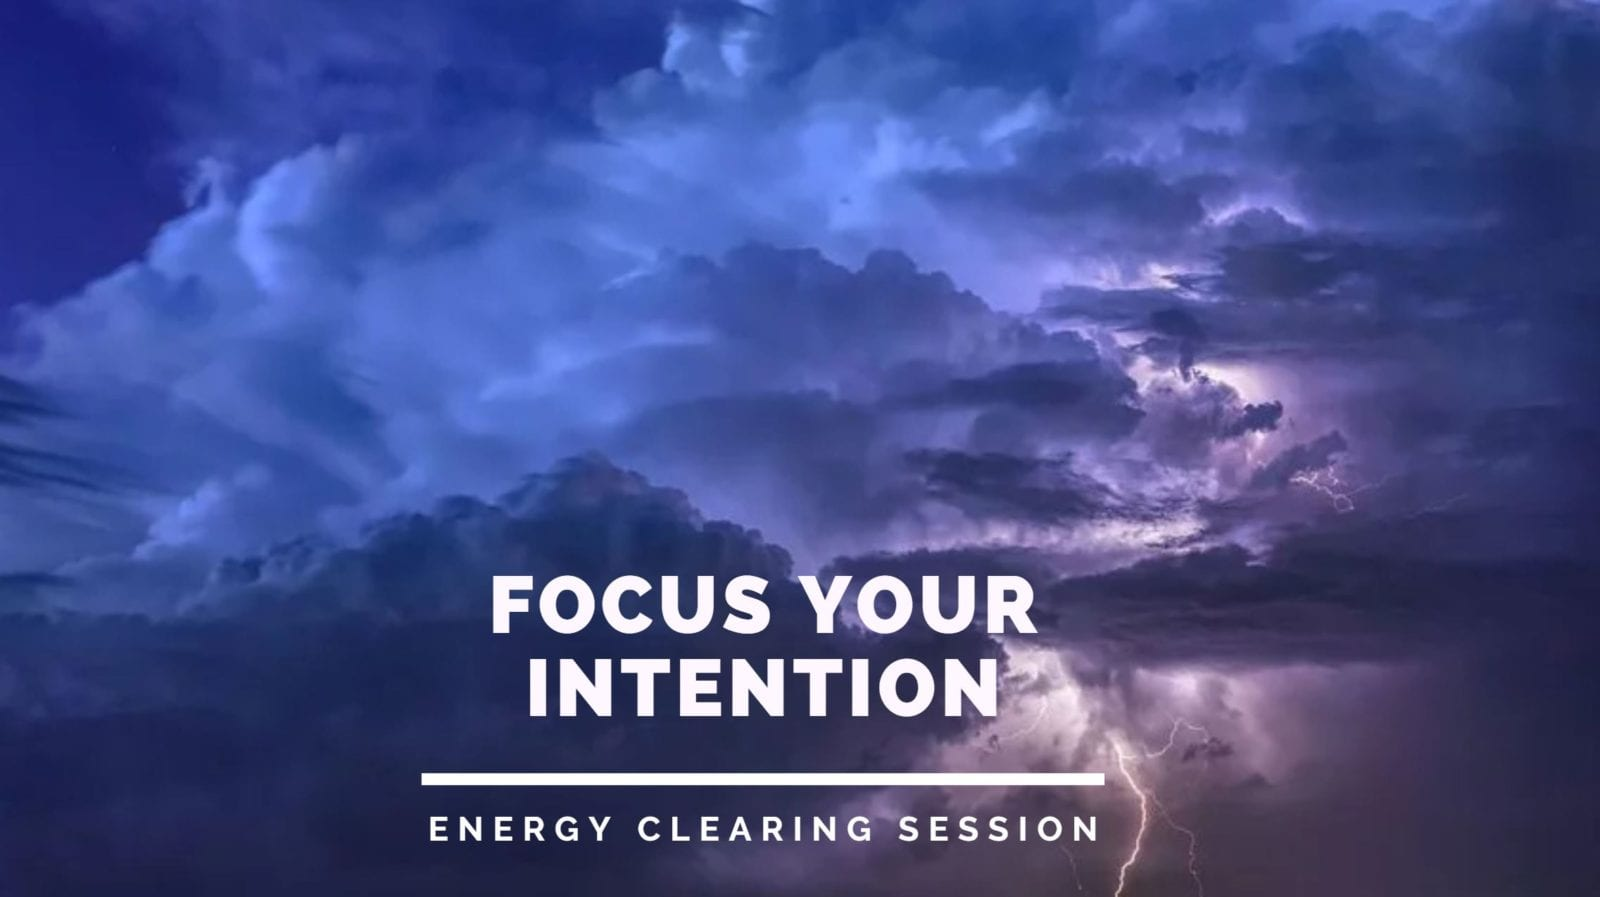 Focus Your Intention